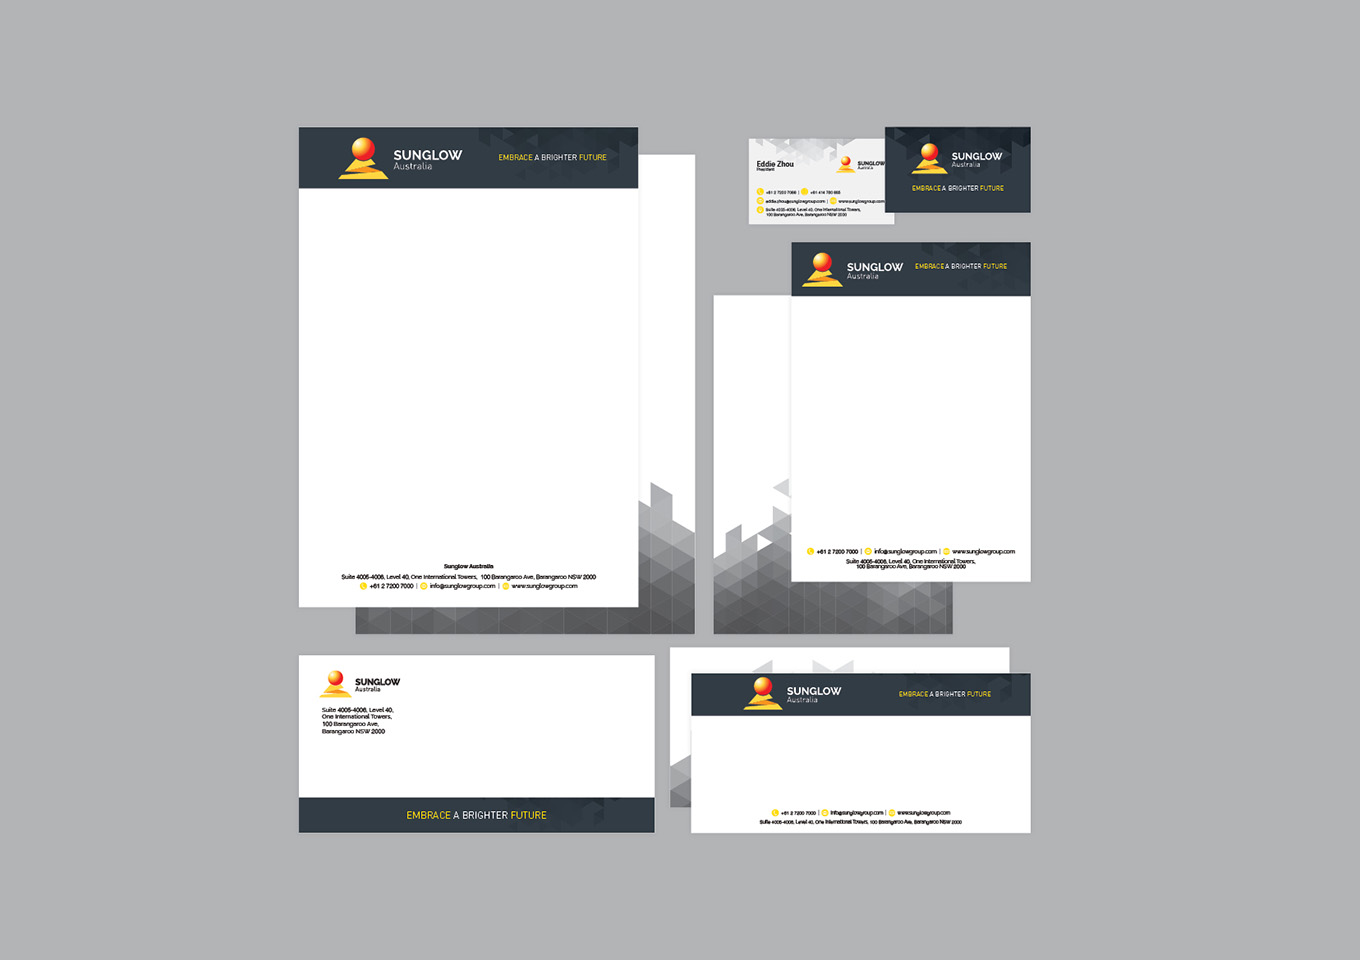 Sunglow Australia statioinery design and print by FOX DESIGN